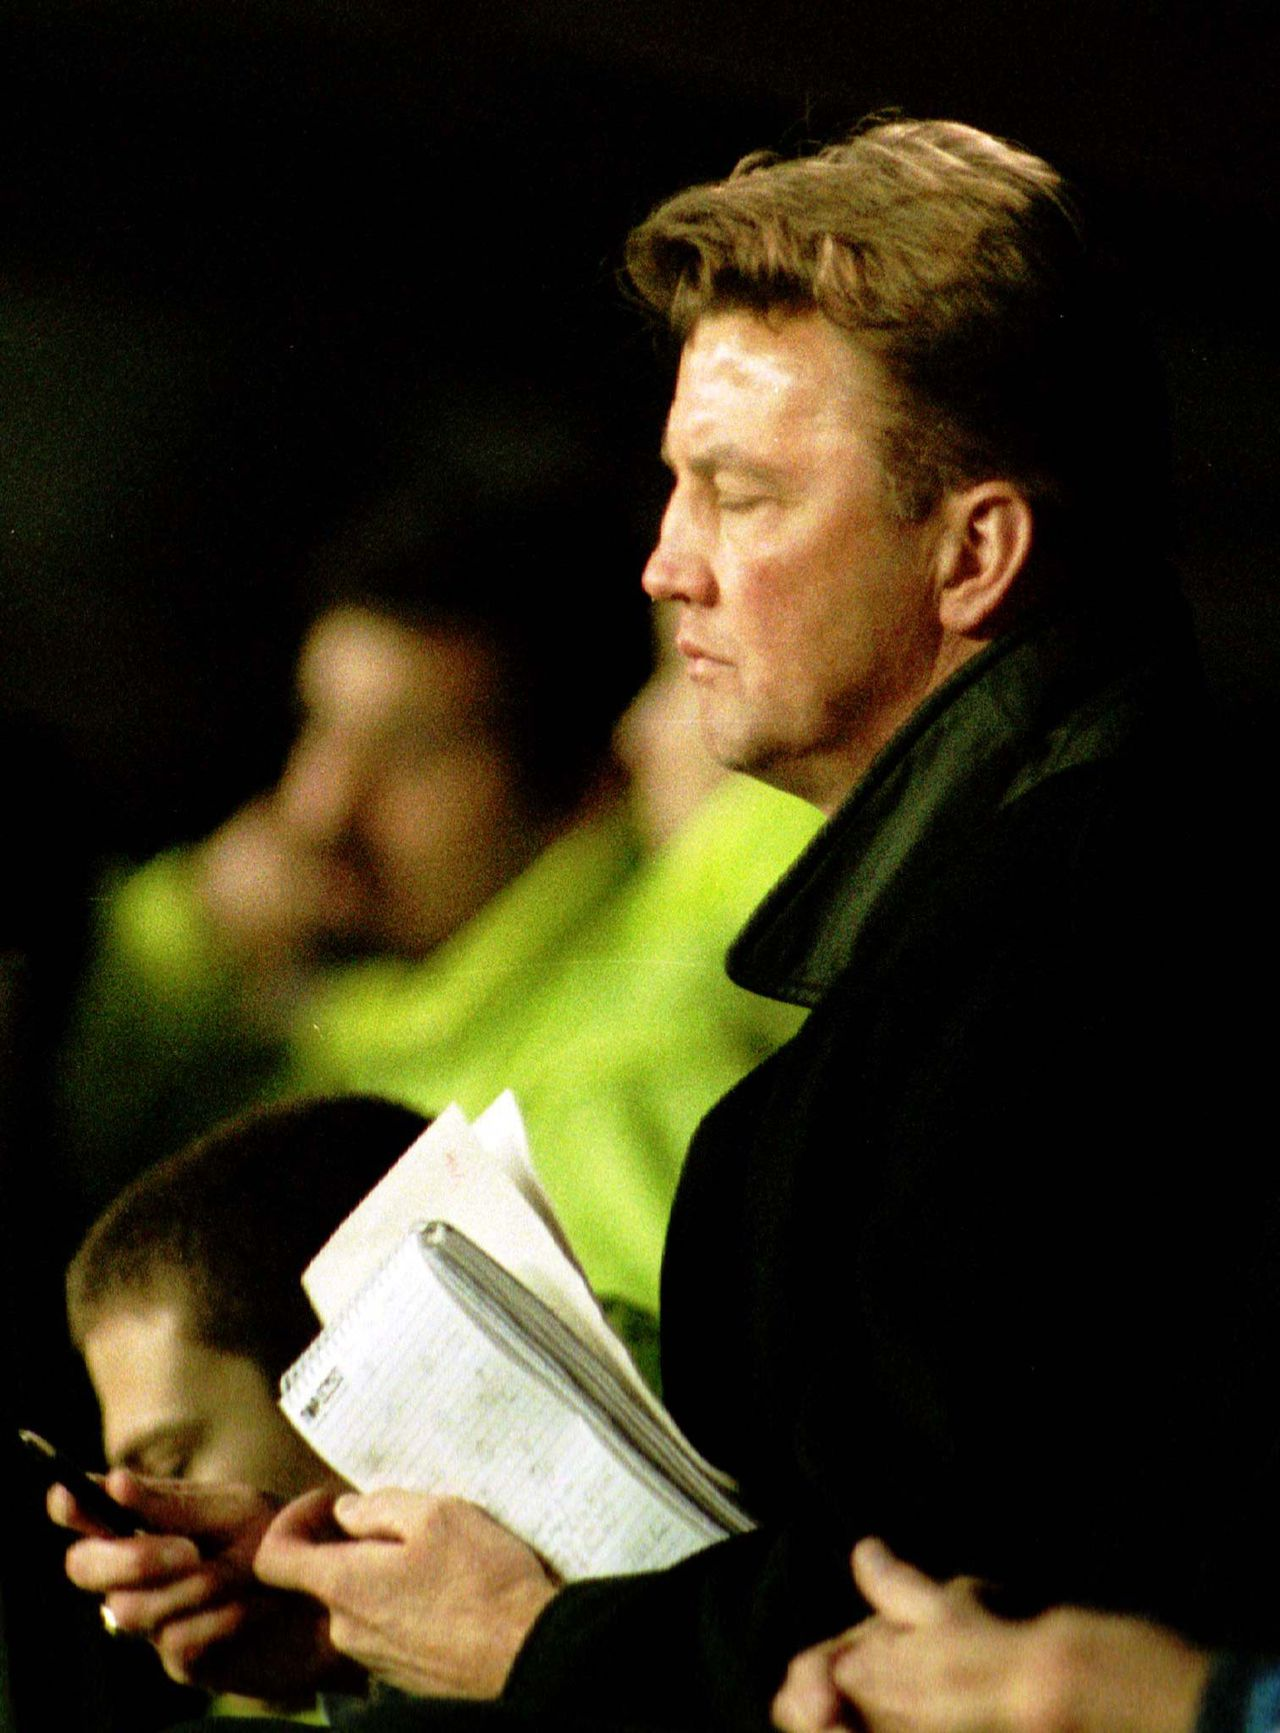 1998, als trainer van Barcelona Barcelona's Dutch coach Louis van Gaal watches his teams match during their Spanish first division soccer match in Barcelona's Nou Camp stadium against Mallorca February 15. The match ended in a goalless draw. SPORT SOCCER